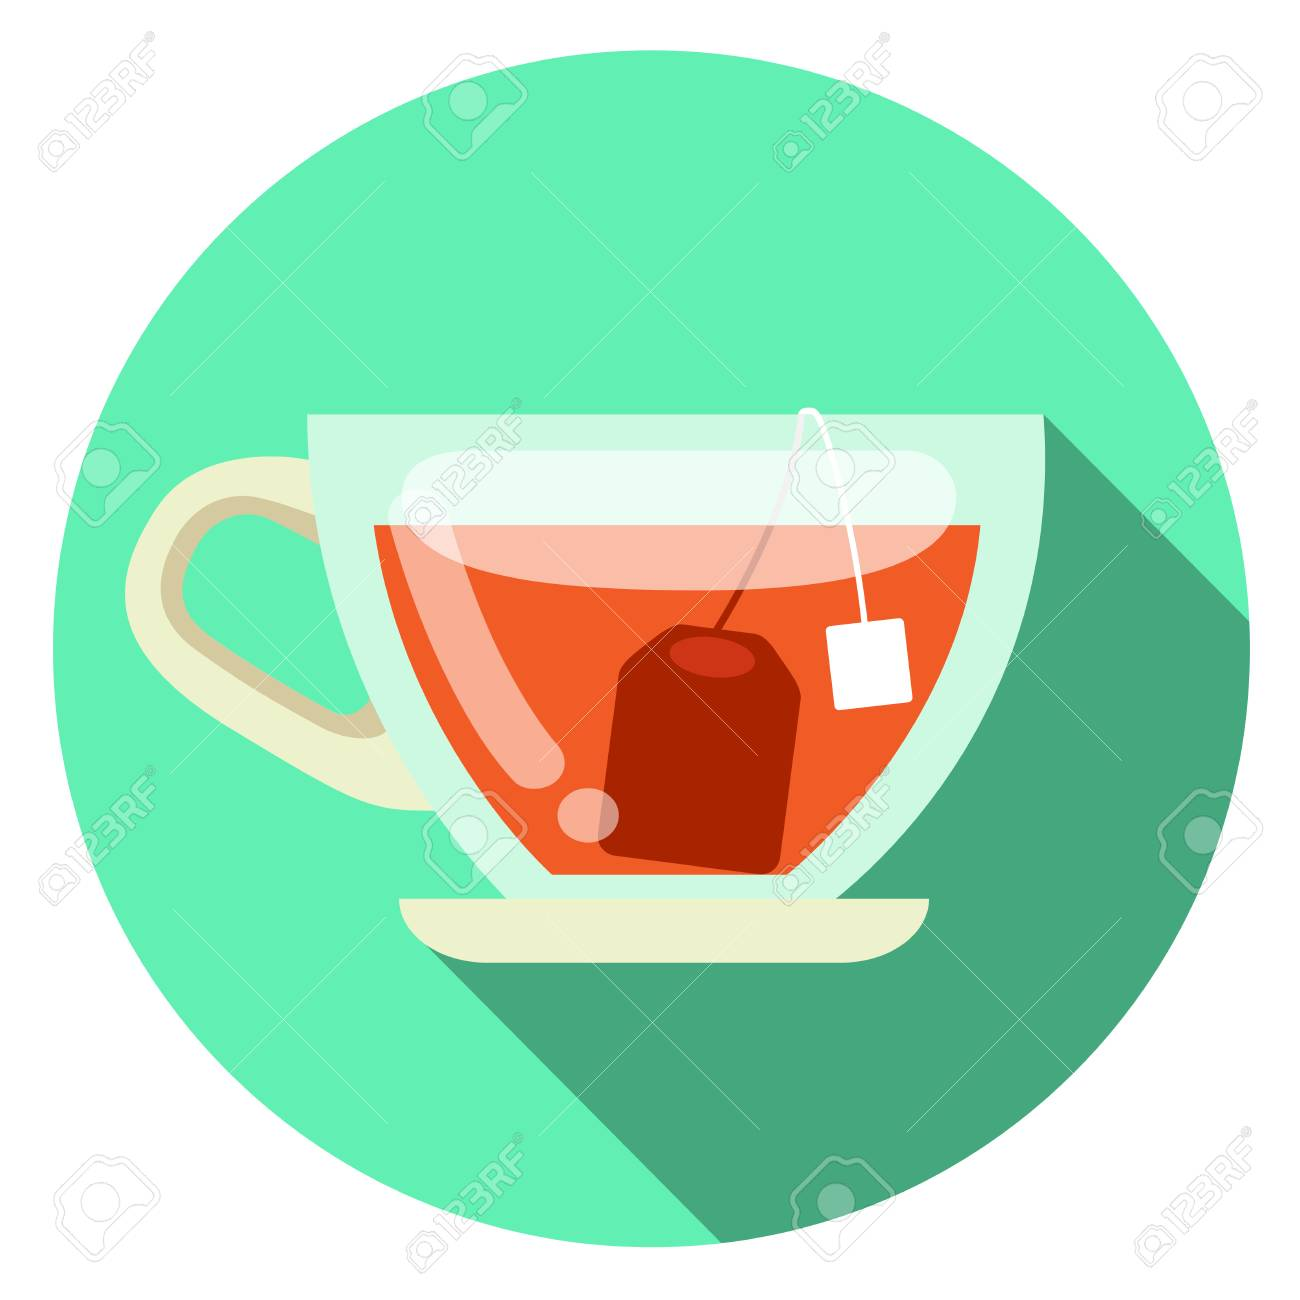 cup of tea vector flat design royalty free cliparts vectors and stock illustration image 83107713 cup of tea vector flat design